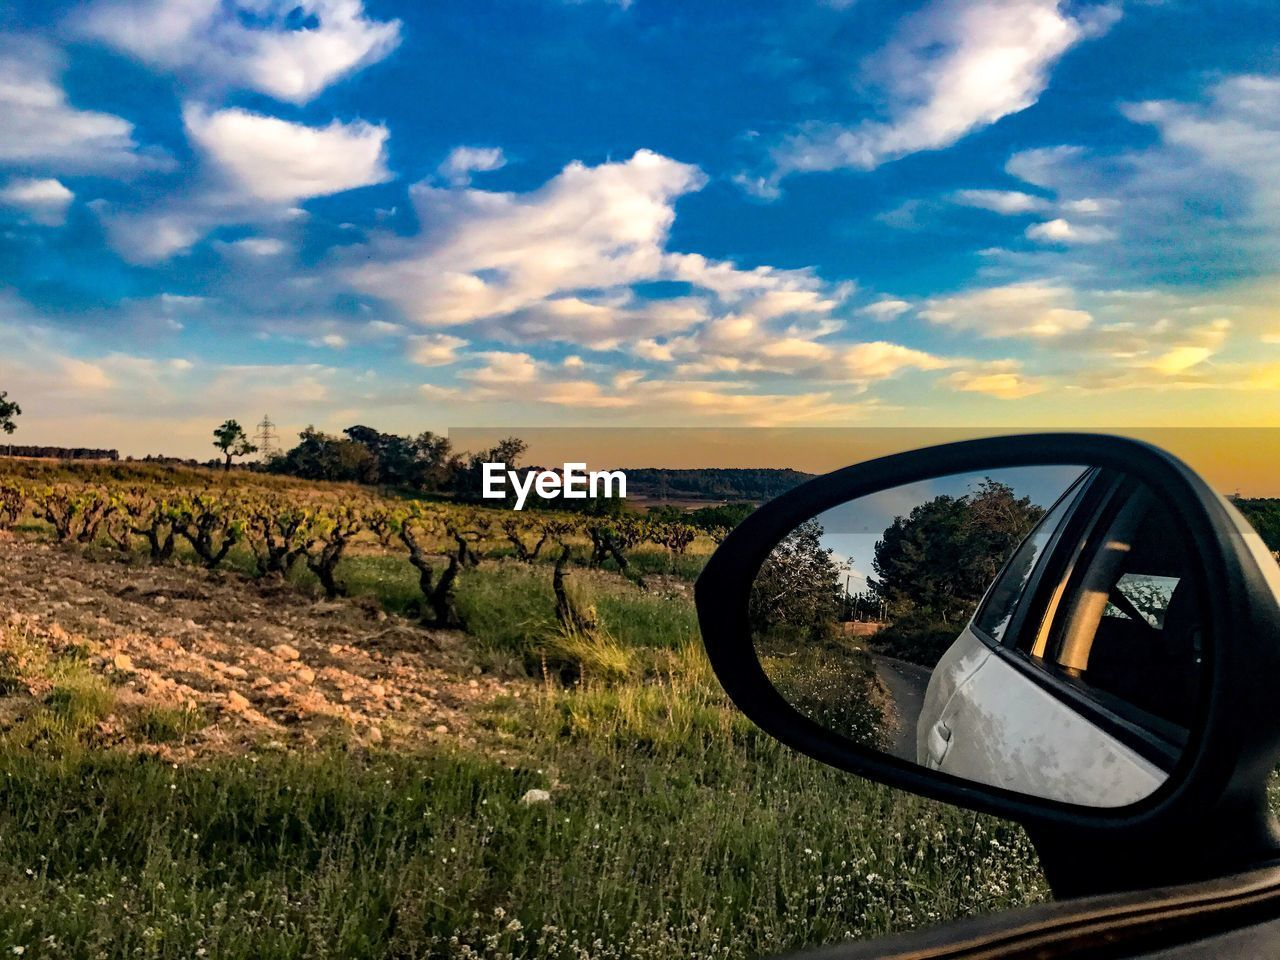 landscape, sky, field, side-view mirror, transportation, car, cloud - sky, nature, grass, beauty in nature, land vehicle, scenics, outdoors, no people, day, tree